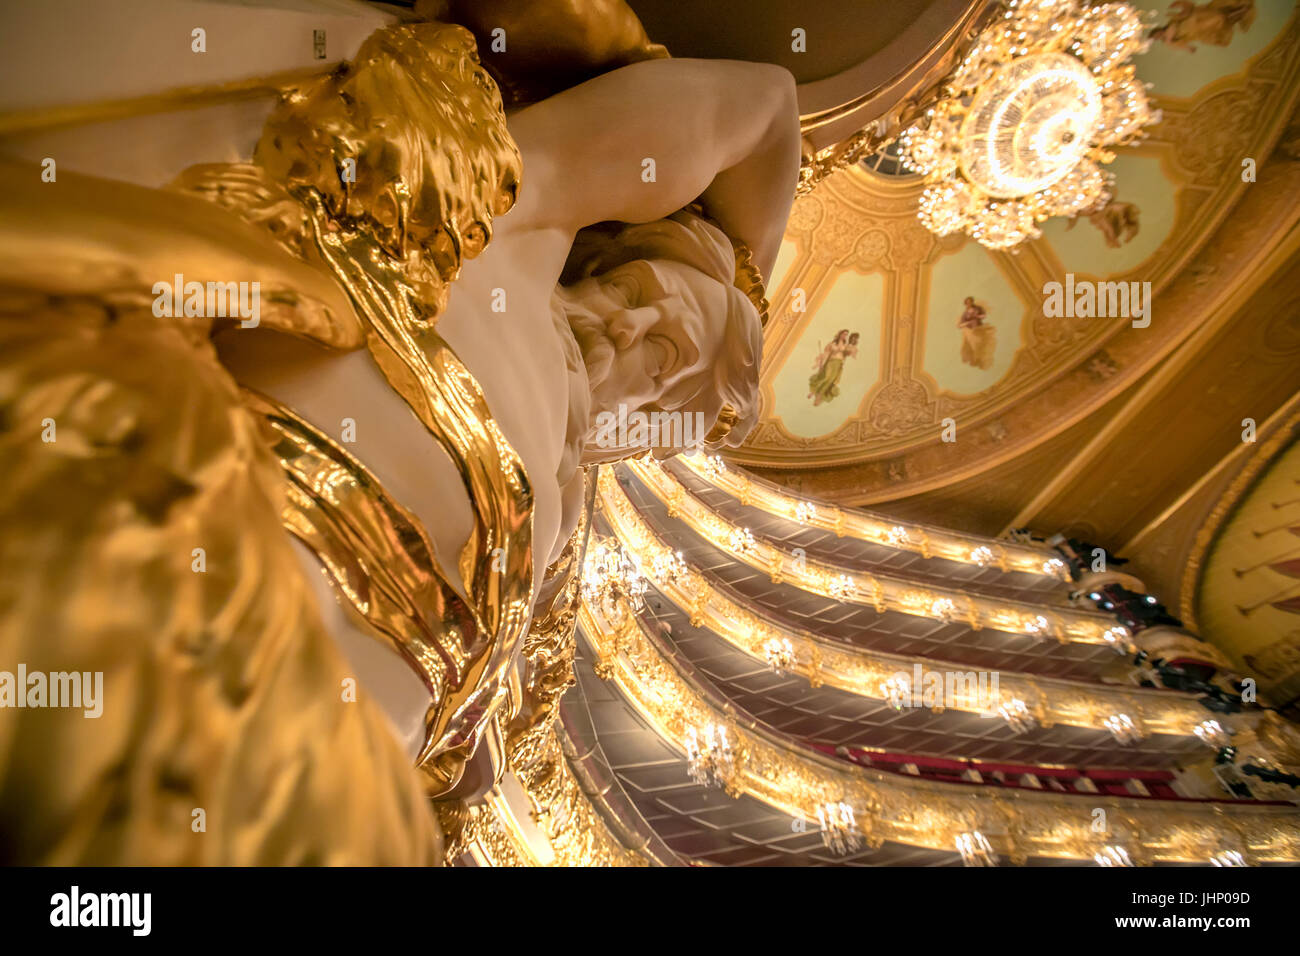 View to the interior of auditorium in the Bolshoi Theatre historic theatre of ballet and opera in Moscow, Russia - Stock Image